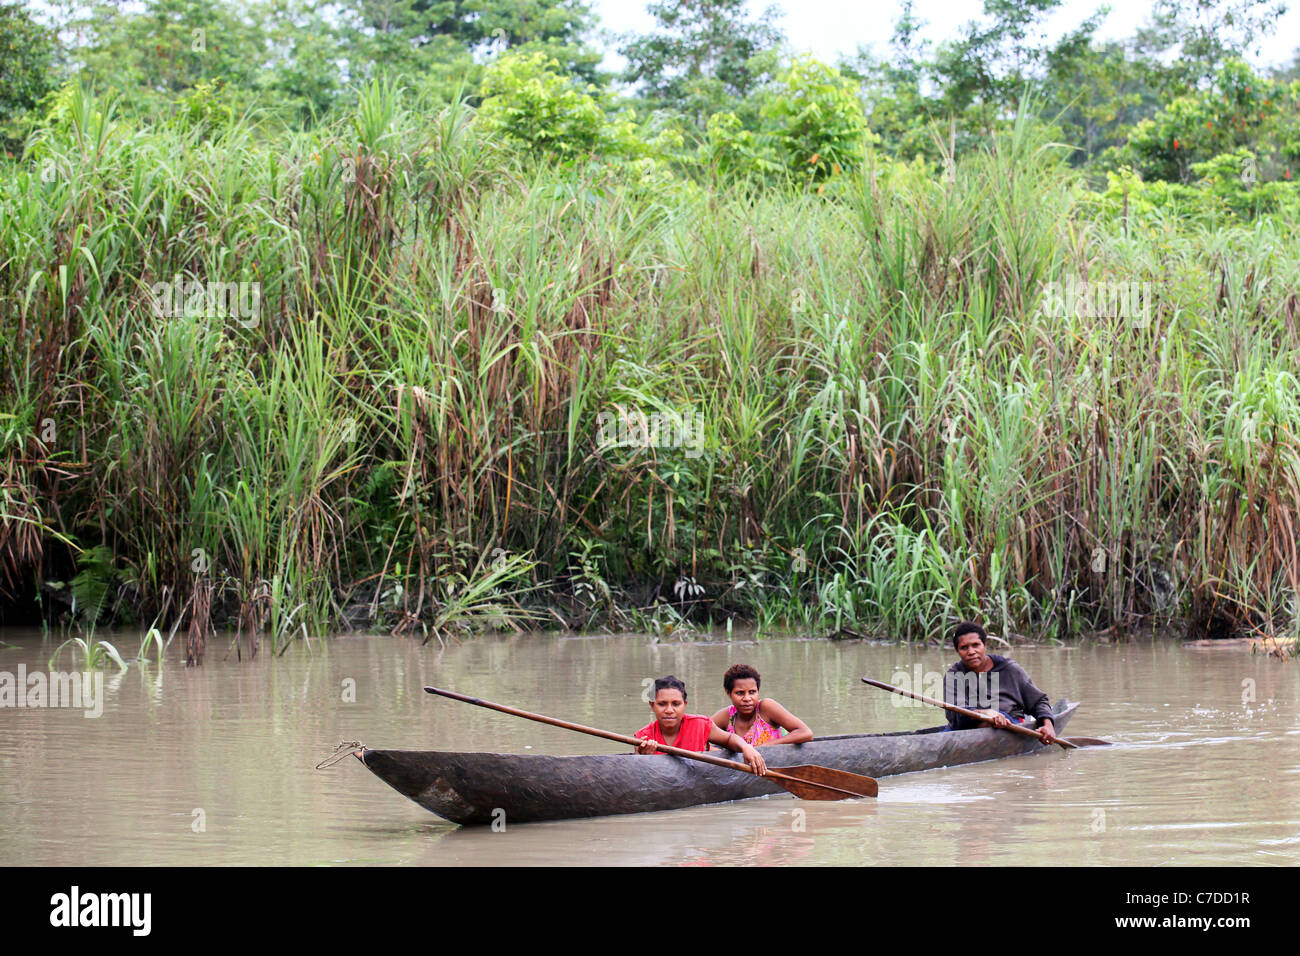 Three girls in a dugout canoe on a river in Papua New Guinea - Stock Image